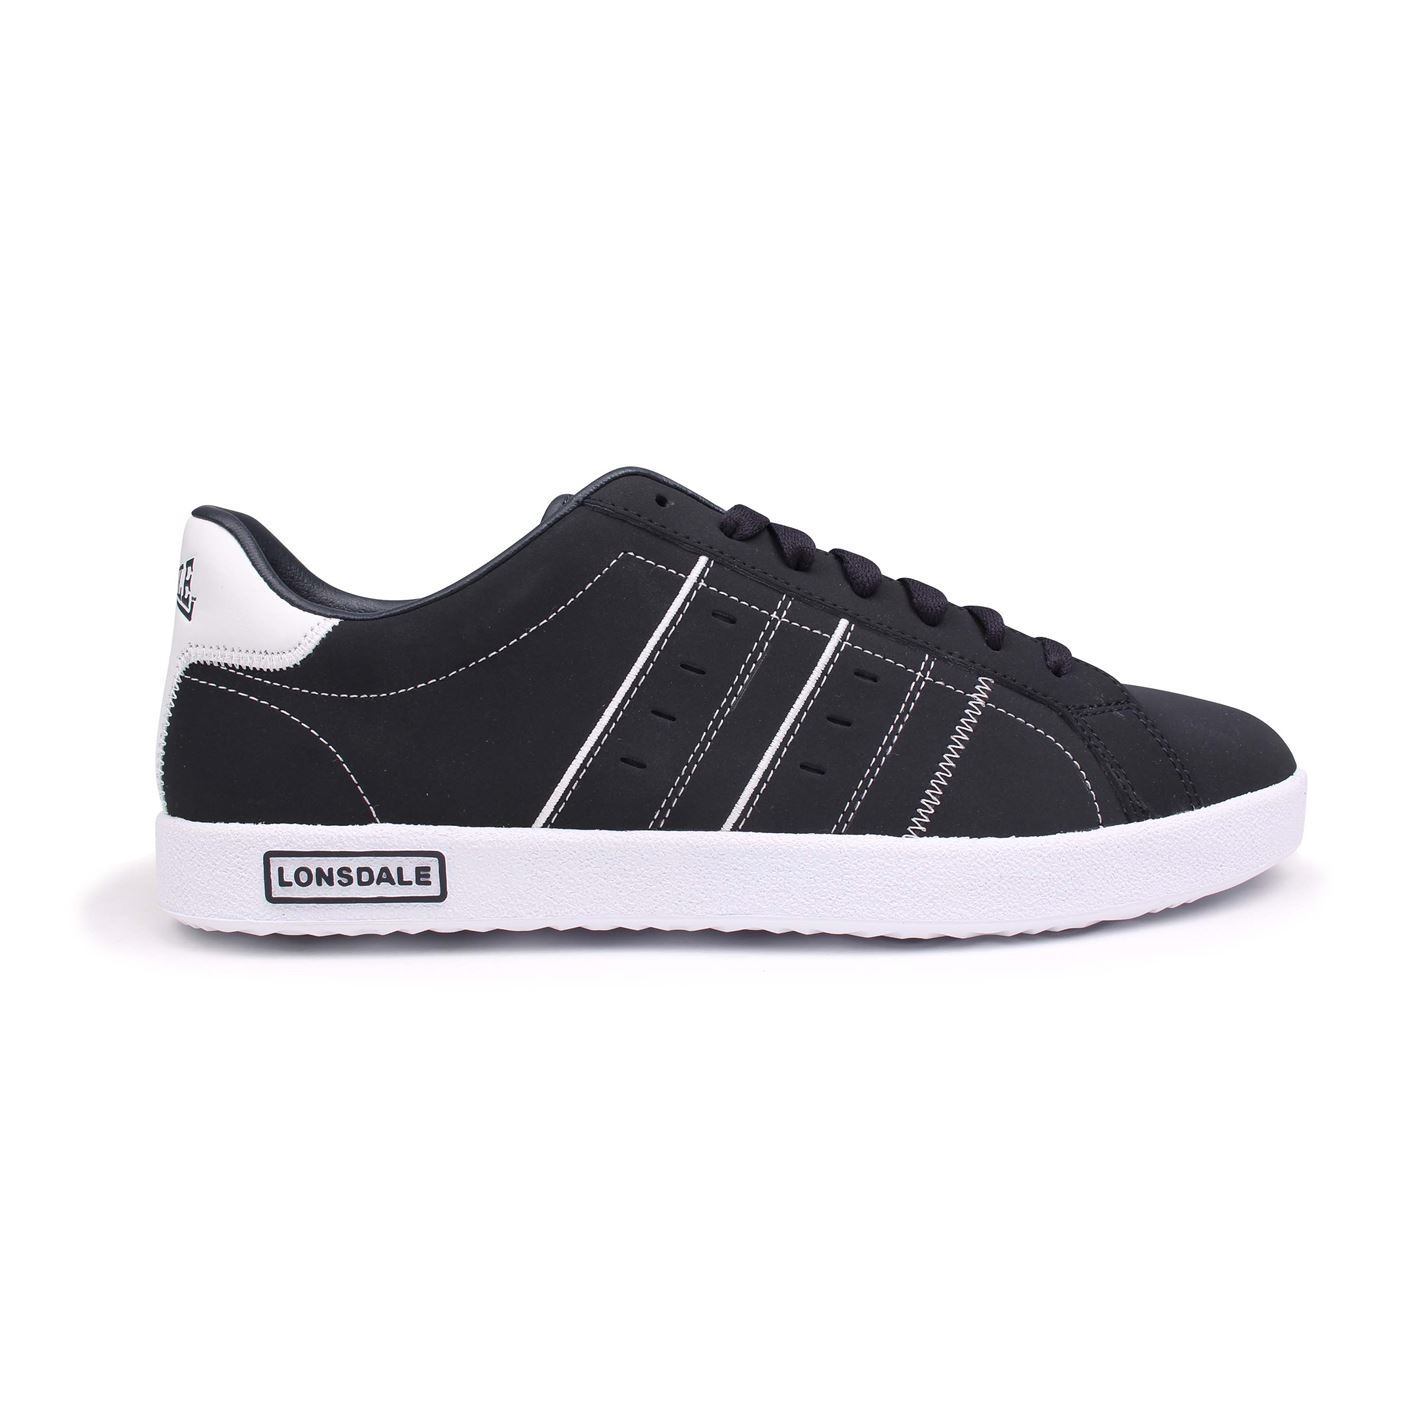 Lonsdale Oval Trainers Footwear  Uomo Schuhes Sneakers Footwear Trainers f6e94d